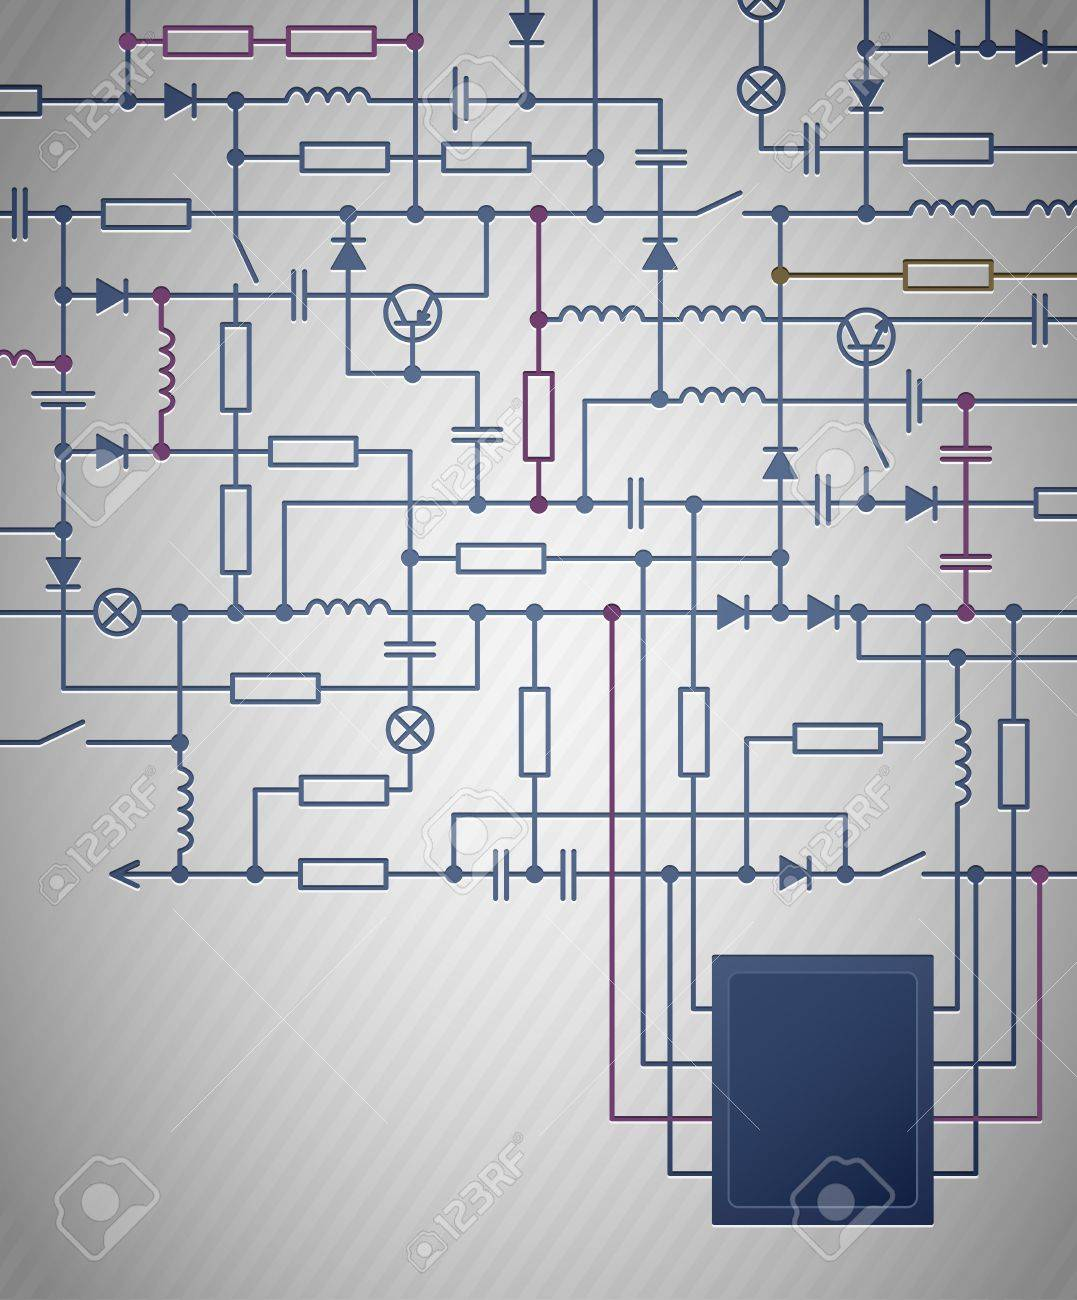 drawing an electrical schematic the wiring diagram background an electrical circuit diagram royalty electrical drawing